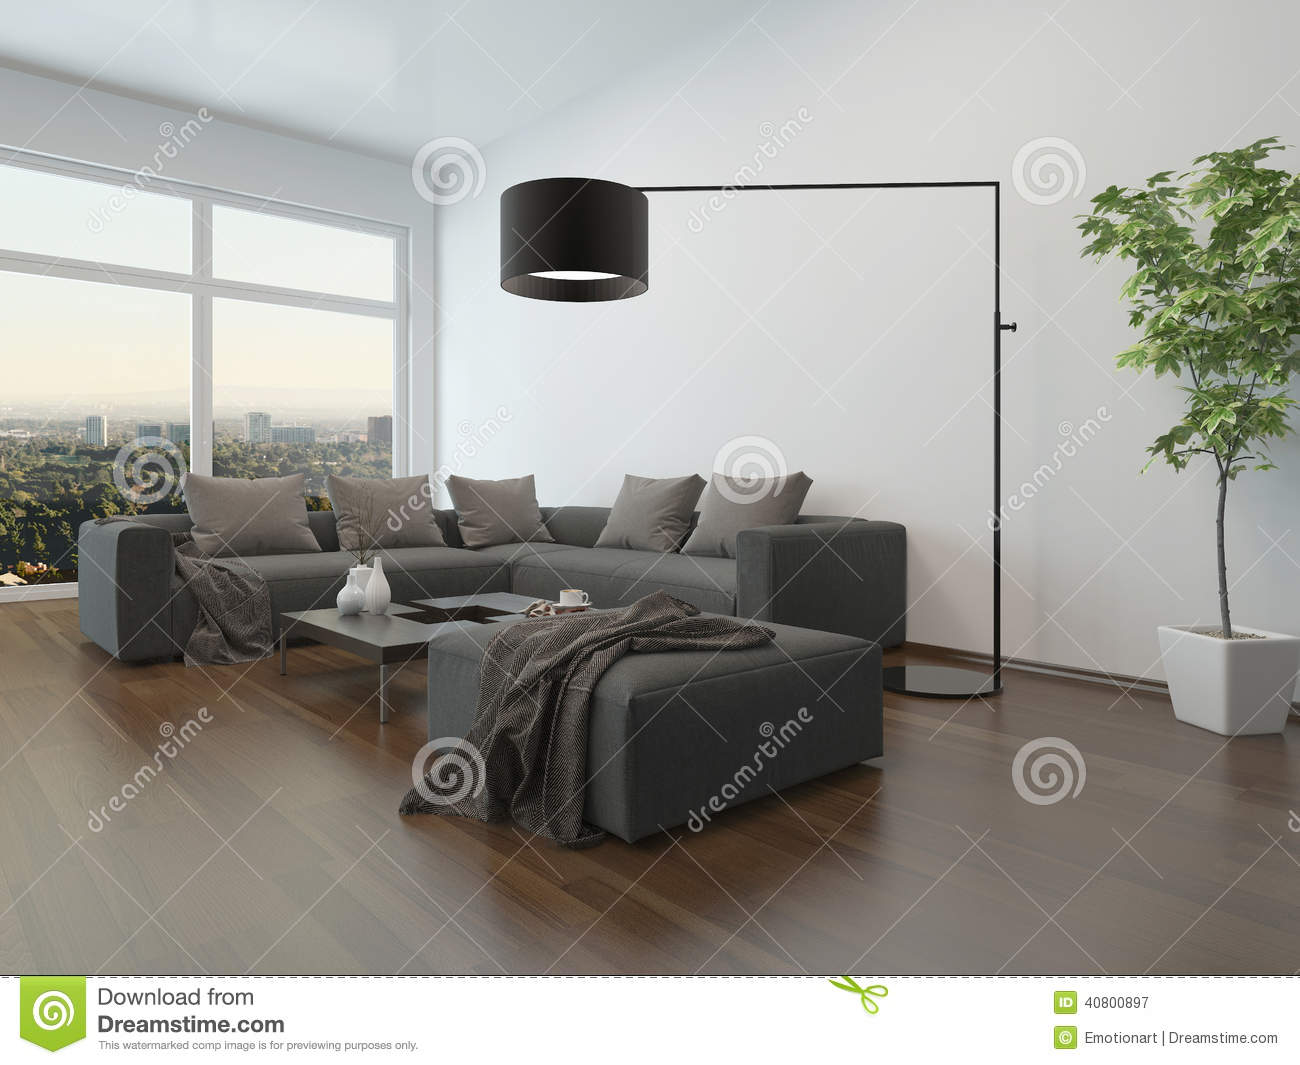 wohnzimmer innenw graue couch und stehlampe stock abbildung bild 40800897. Black Bedroom Furniture Sets. Home Design Ideas